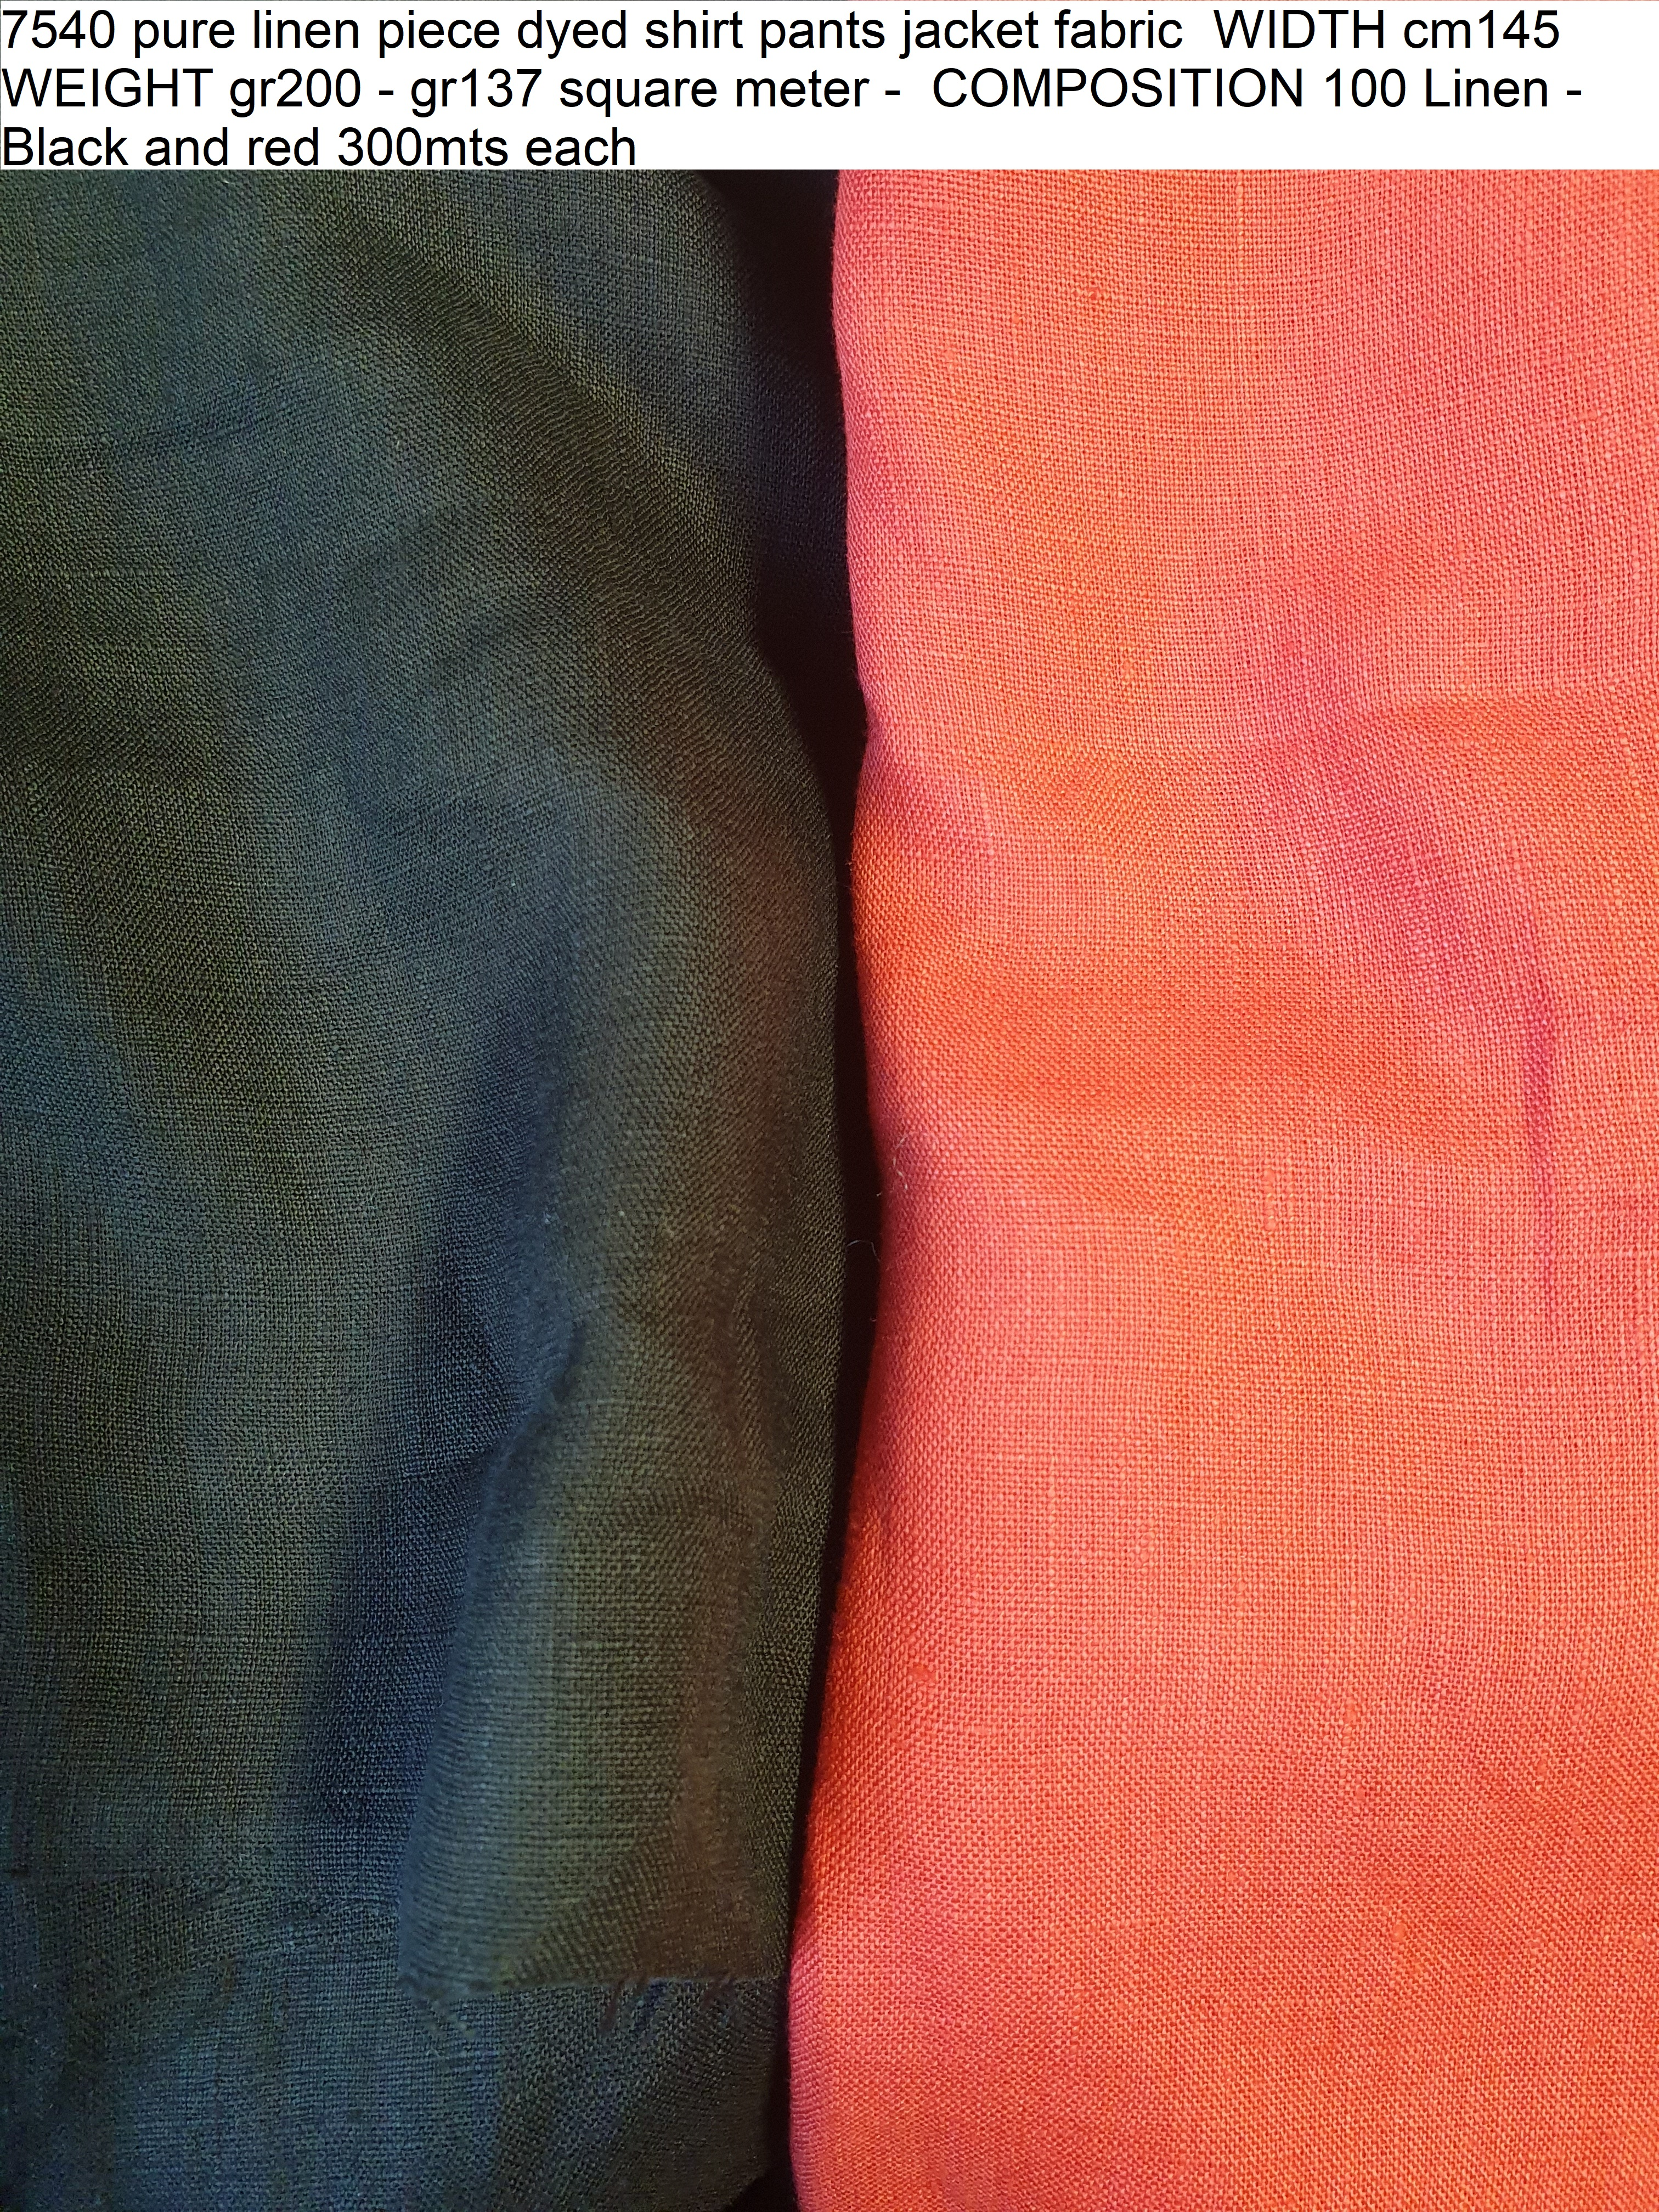 7540 pure linen piece dyed shirt pants jacket fabric WIDTH cm145 WEIGHT gr200 - gr137 square meter - COMPOSITION 100 Linen - Black and red 300mts each